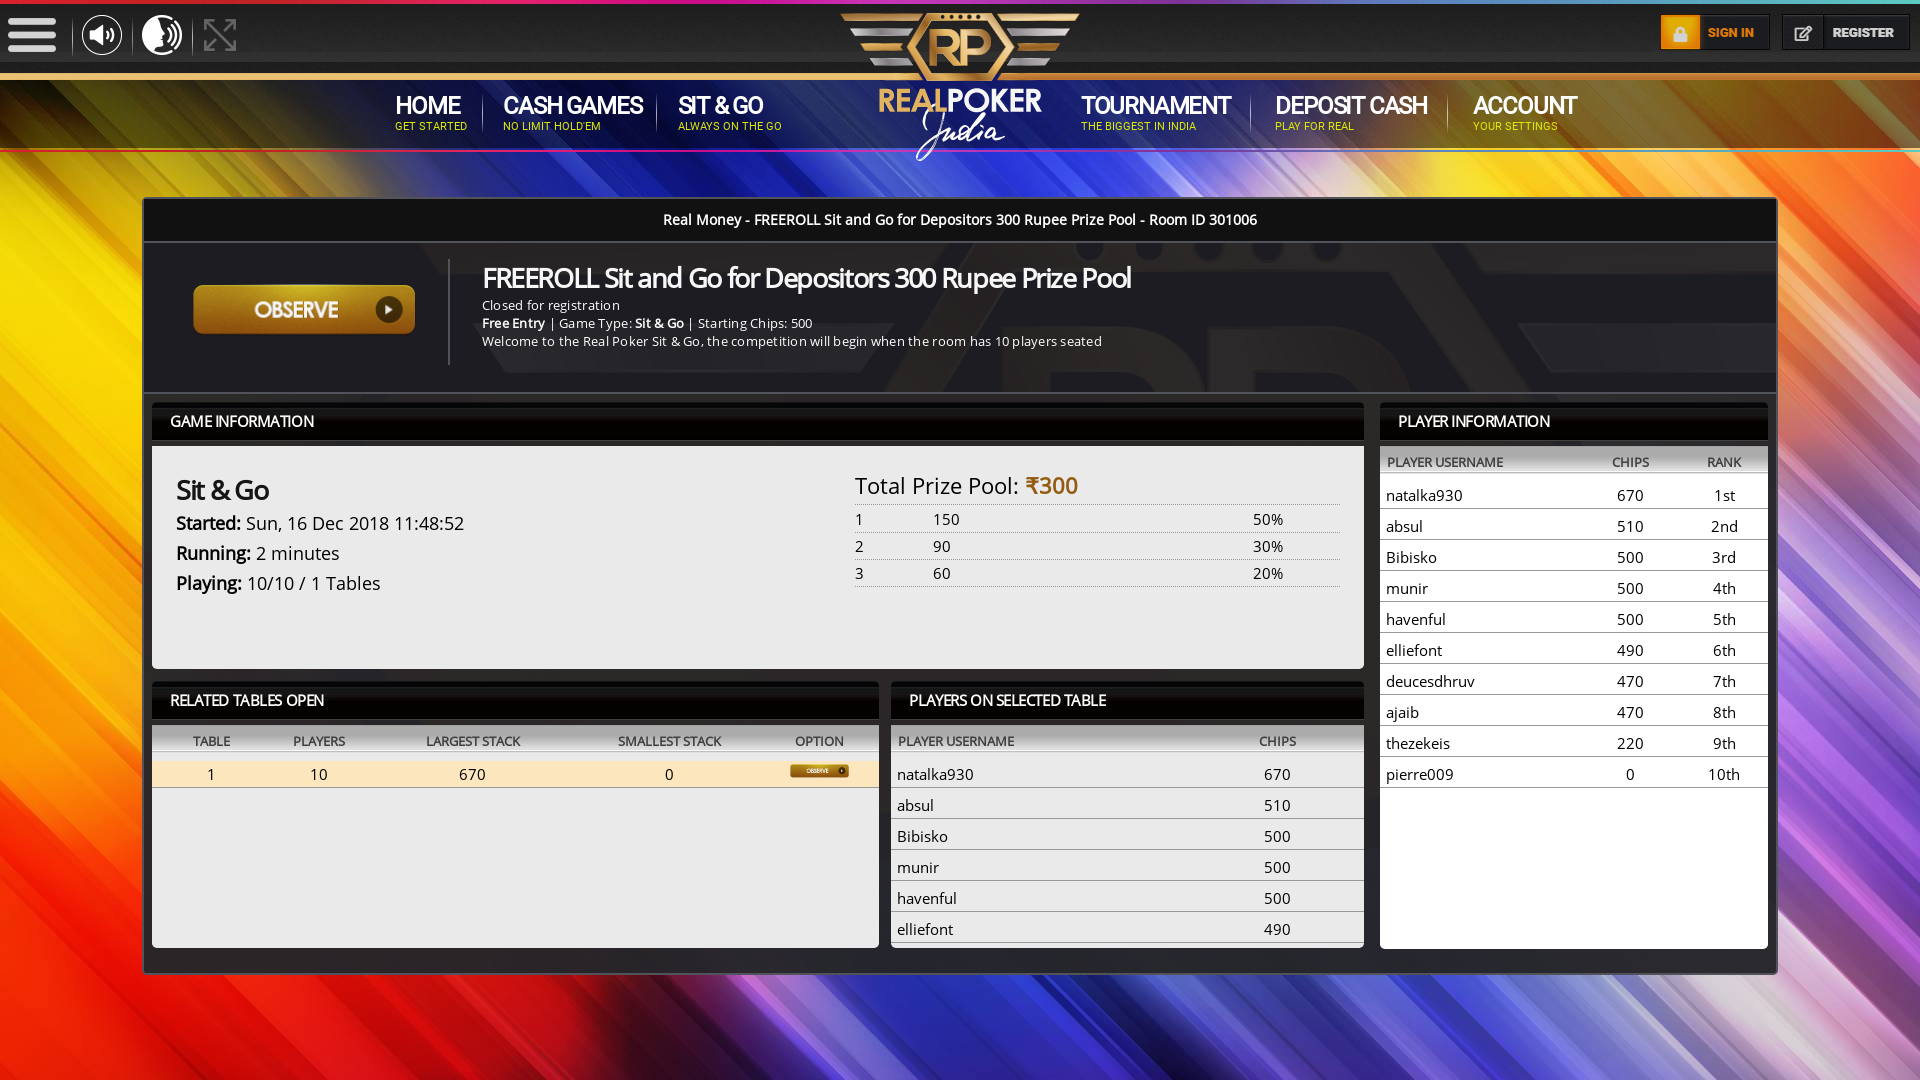 Indian online poker on a 10 player table in the 1st minute match up